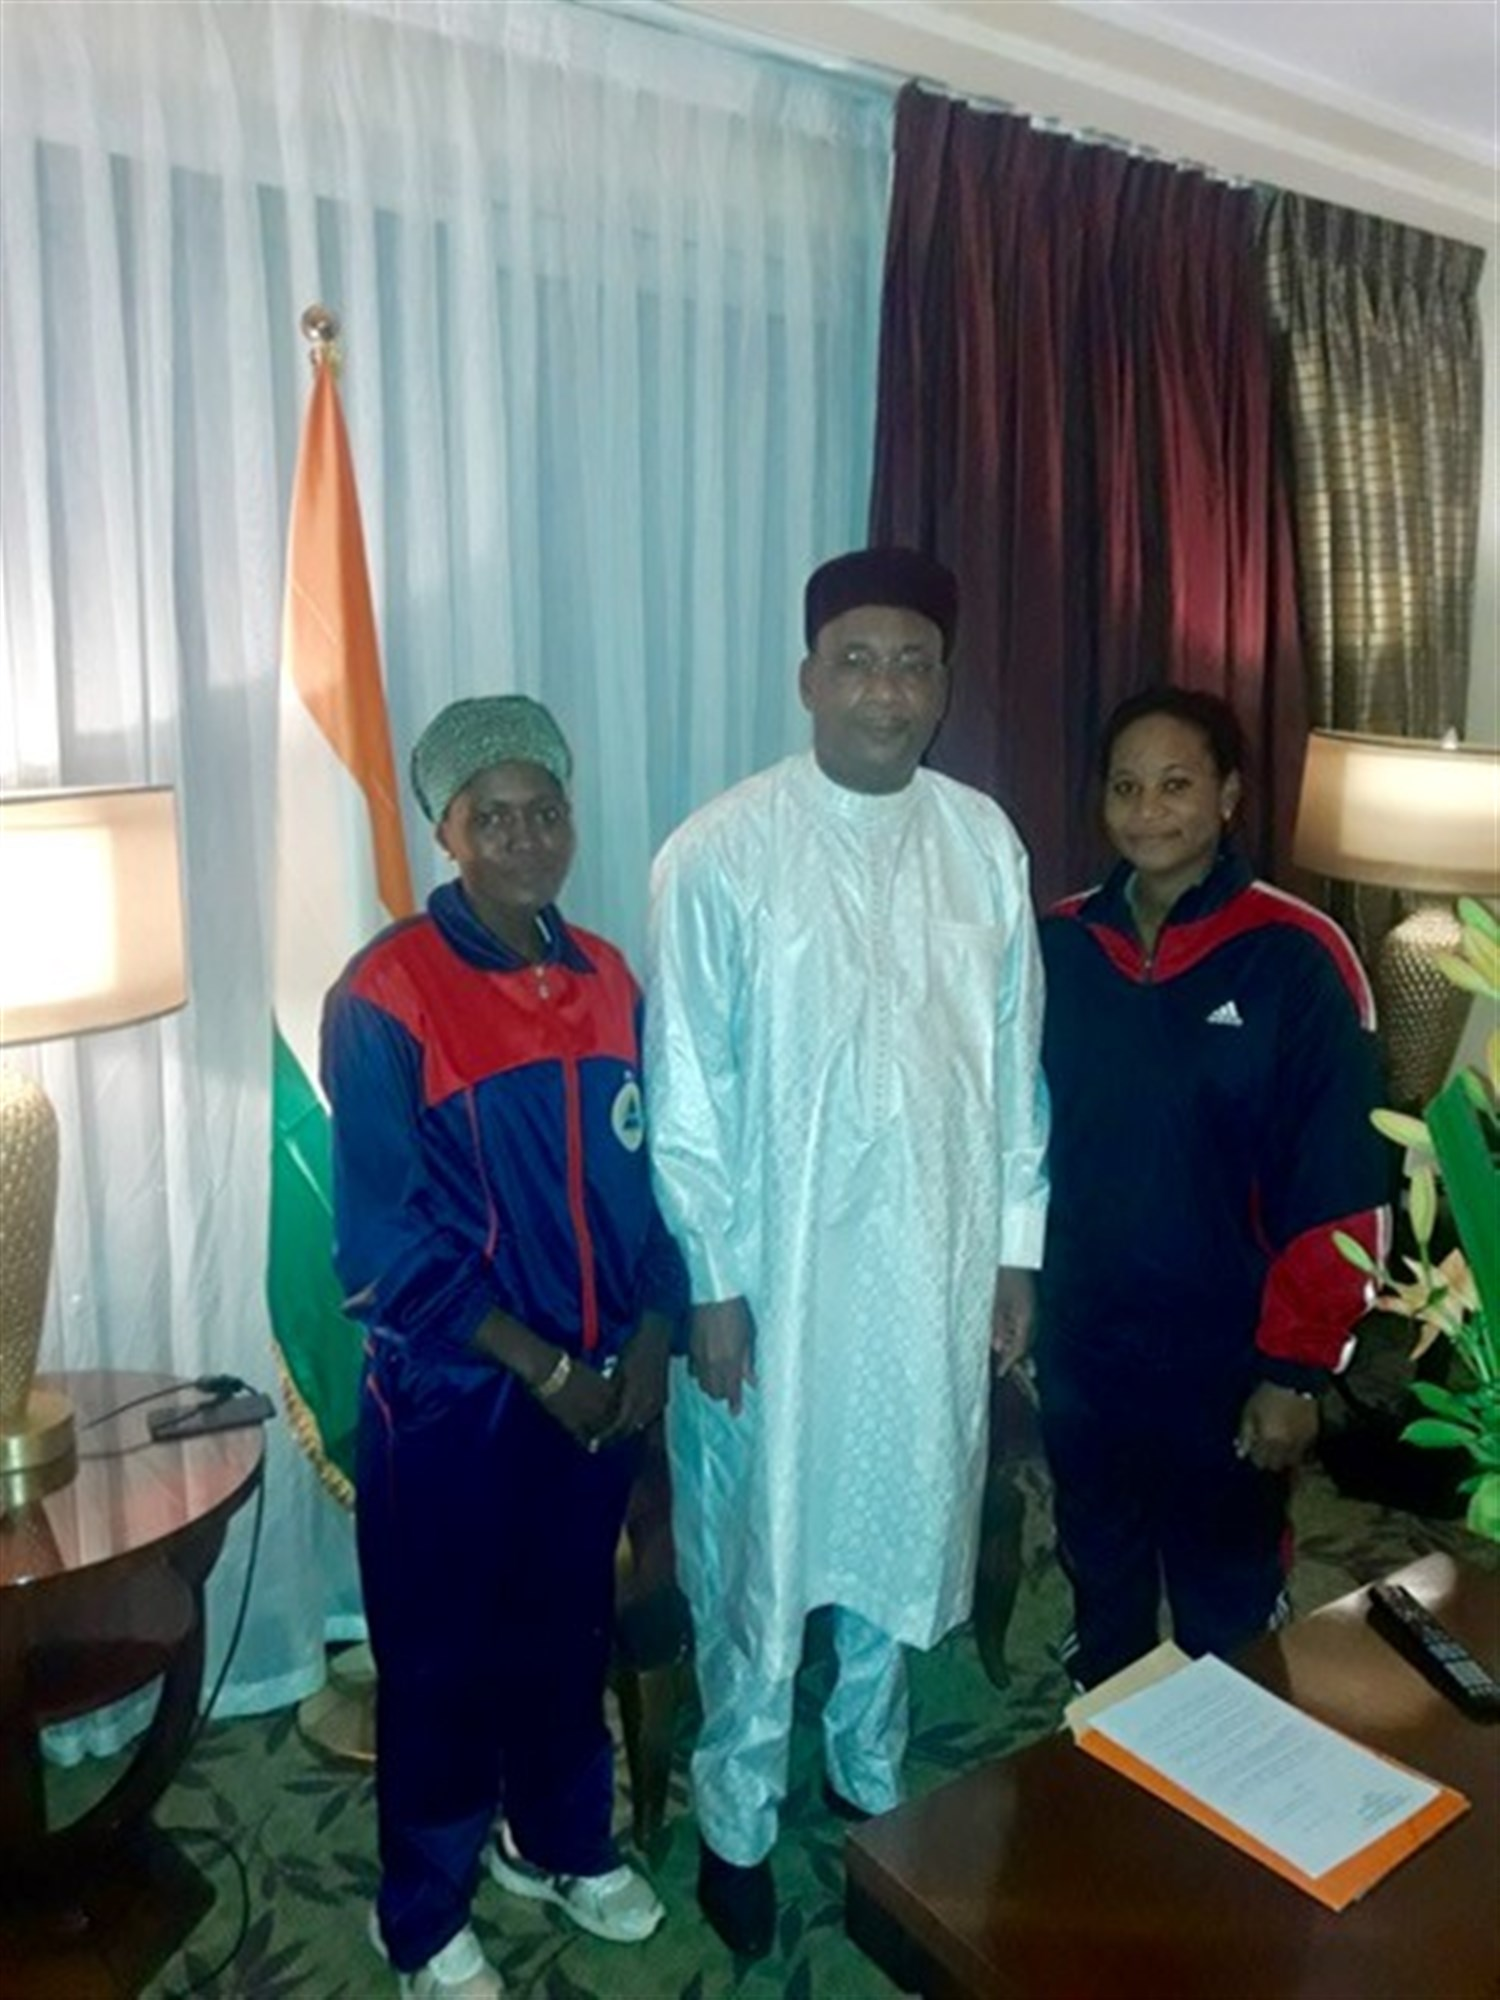 Students from Niger attending the U.S. Africa Command's Intelligence Directorate (J2) regional all-female Military Intelligence Professionals Course had the opportunity to meet Nigerien President Mahamadou Issoufou, who was in Dakar, Senegal for an unrelated event.